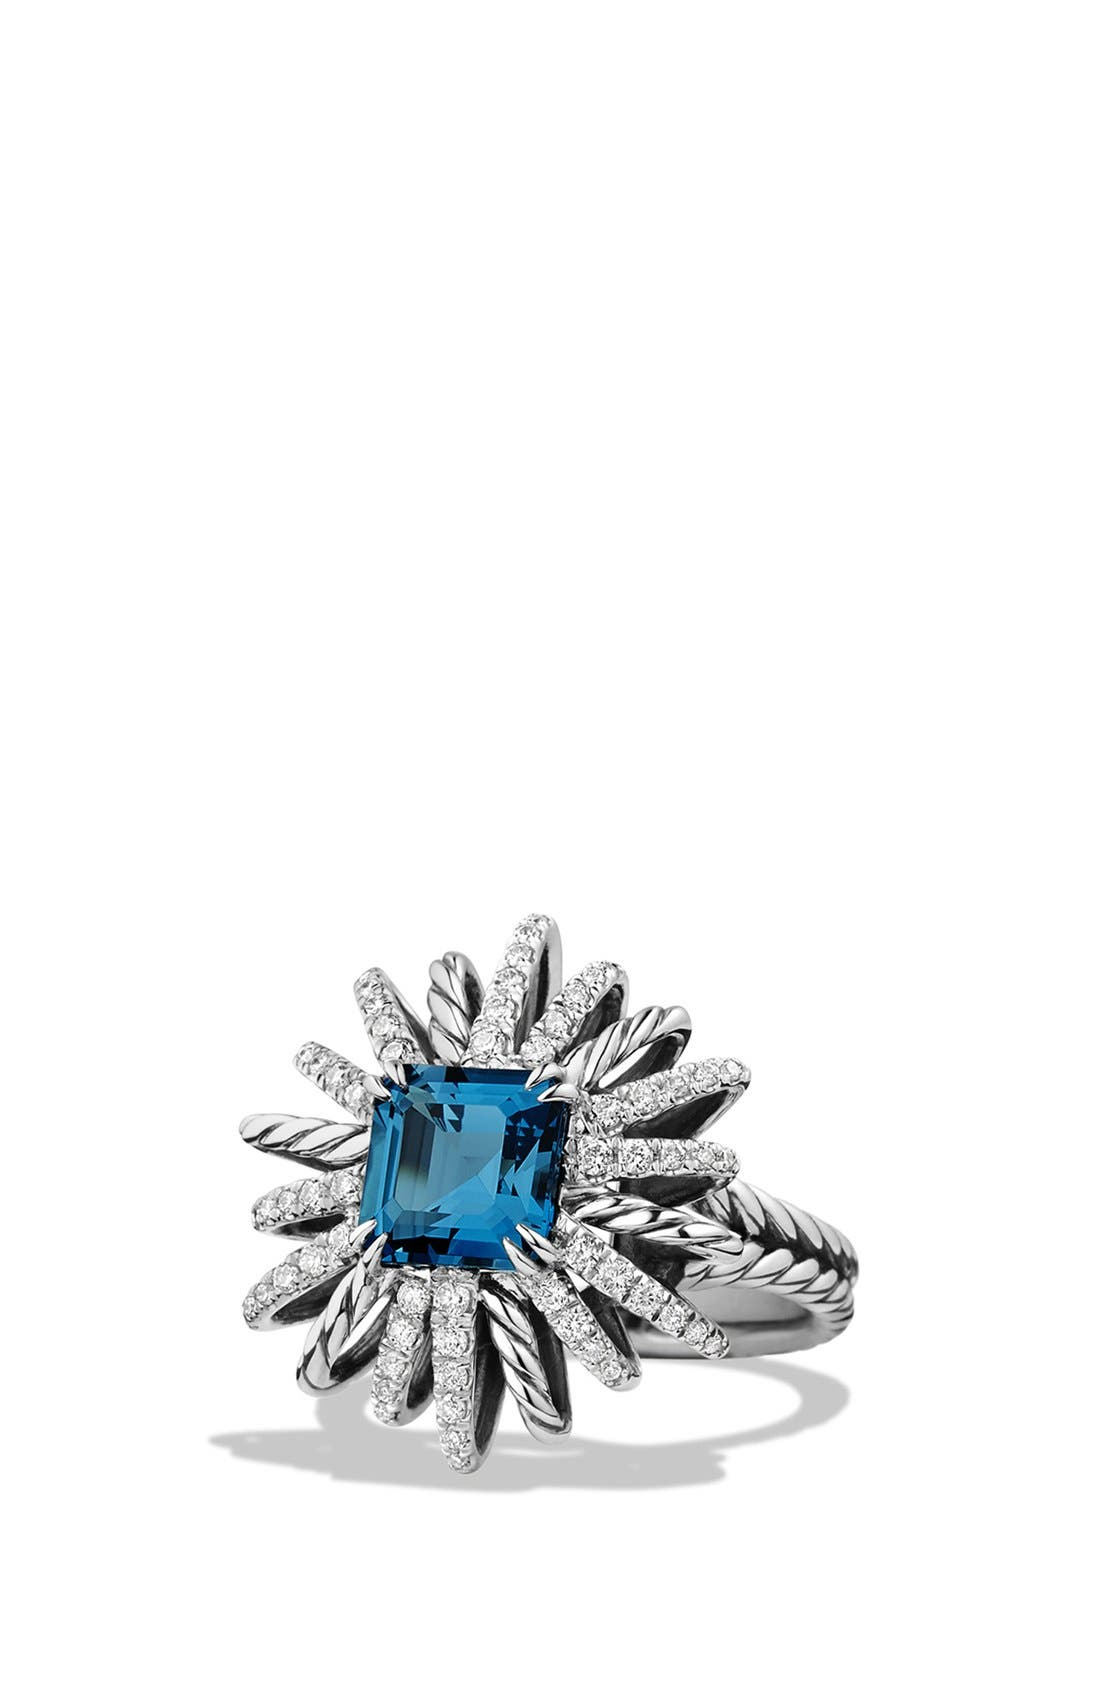 David Yurman 'Starburst' Ring with Diamonds in Silver